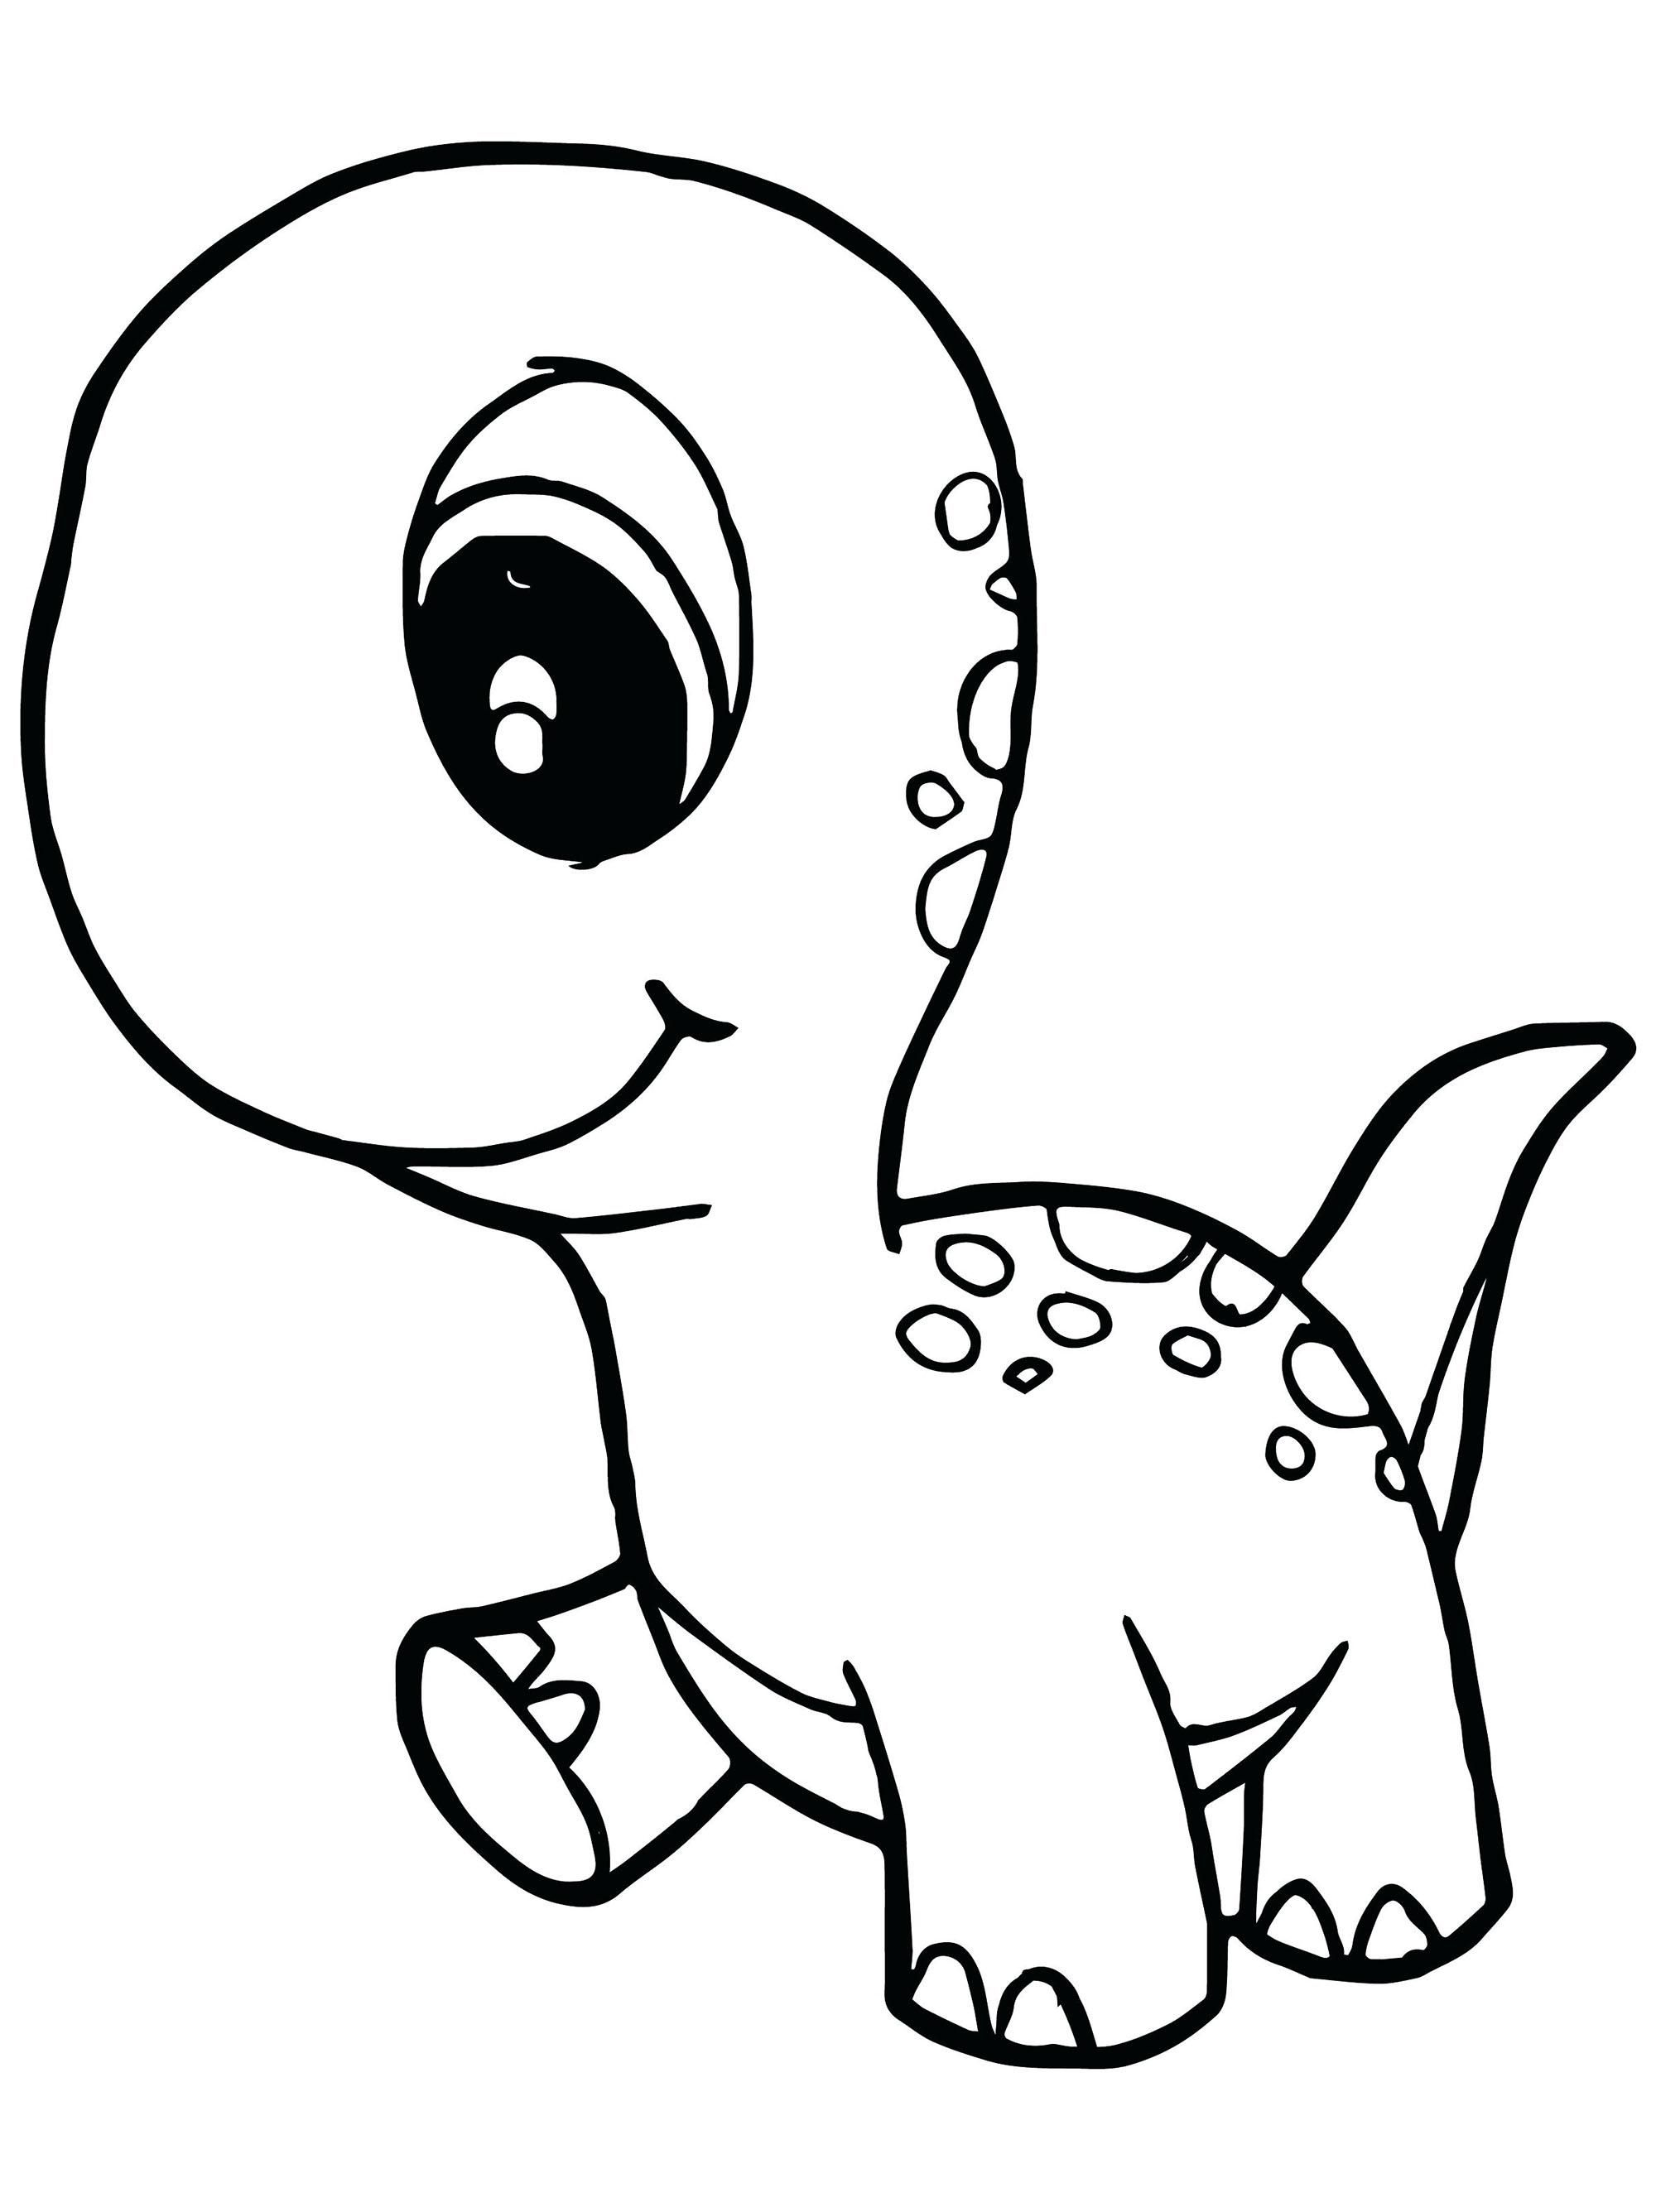 Awesome Coloring Page Dinosaurs That You Must Know You Re In Good